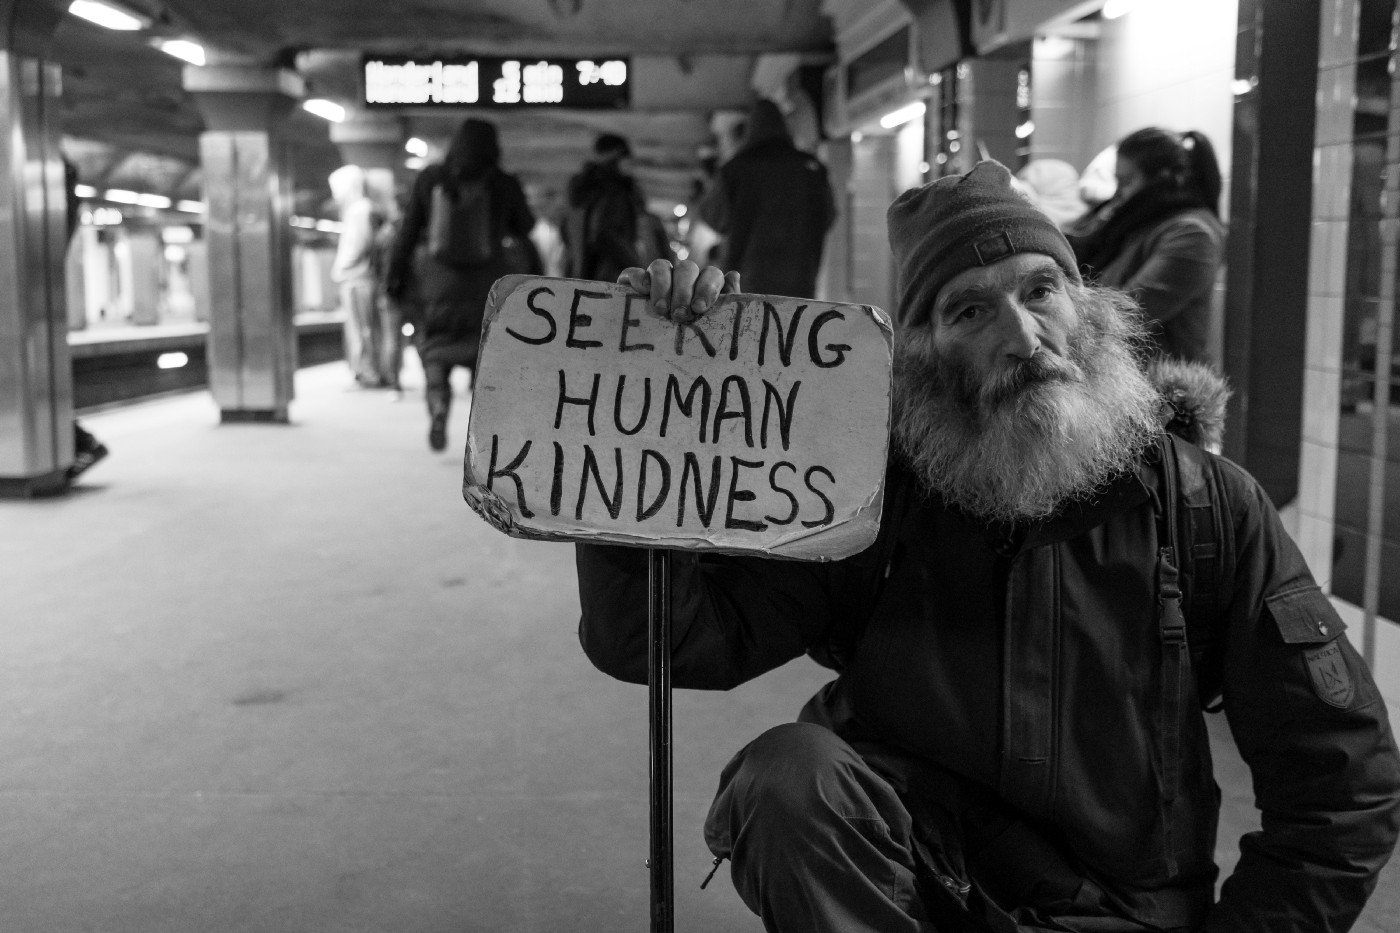 """A bearded man wearing a wool hat and dark jacket on a subway platform, holding a sign that says """"Seeking Human Kindness"""""""